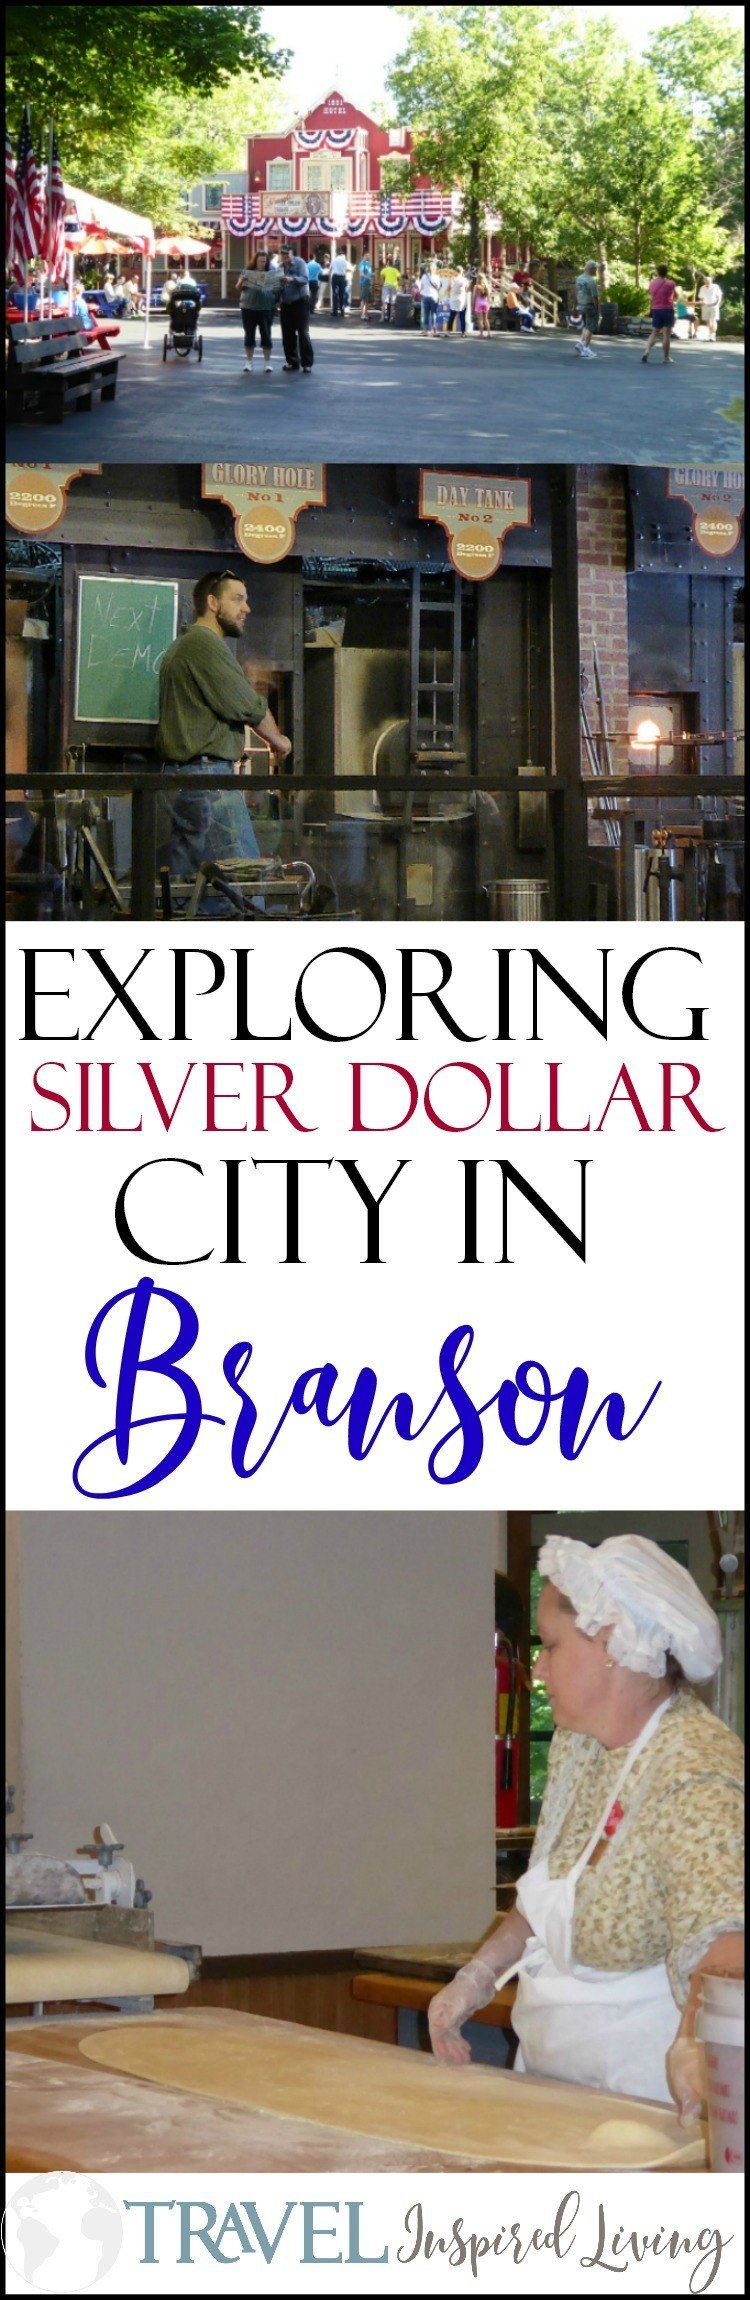 Exploring Silver Dollar City in Branson, Missouri is fun for all ages.